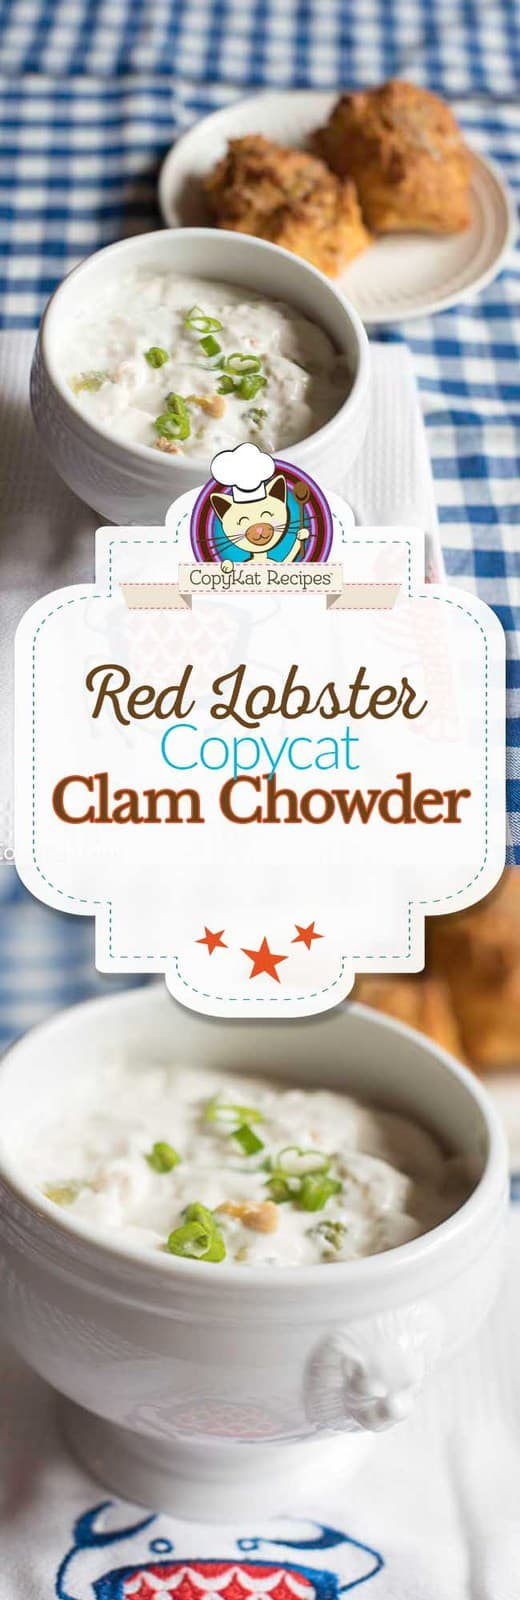 You can recreate the Red Lobster Clam Chowder at home with this copycat recipe.